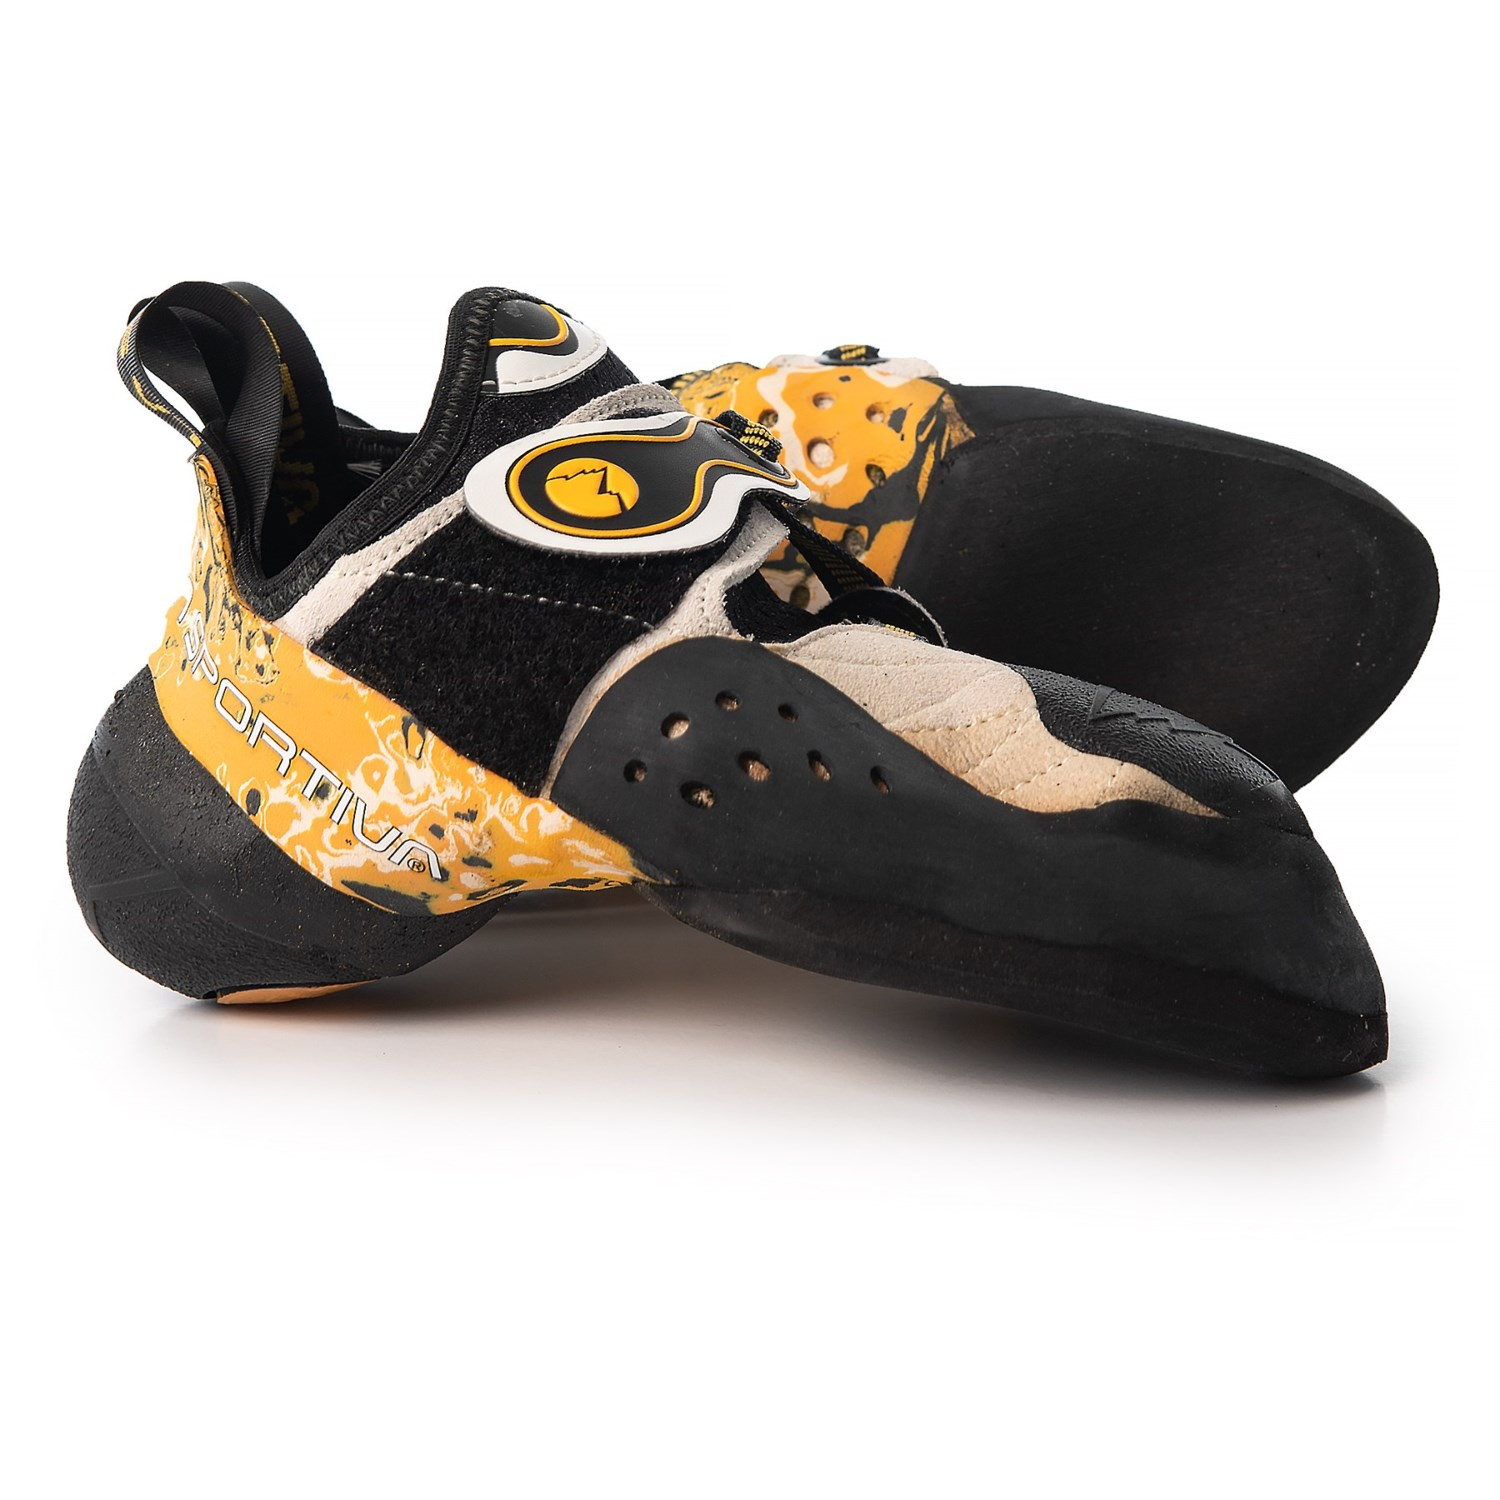 8d4450a057 La Sportiva Solution Climbing Shoes (For Men and Women) in White Yellow